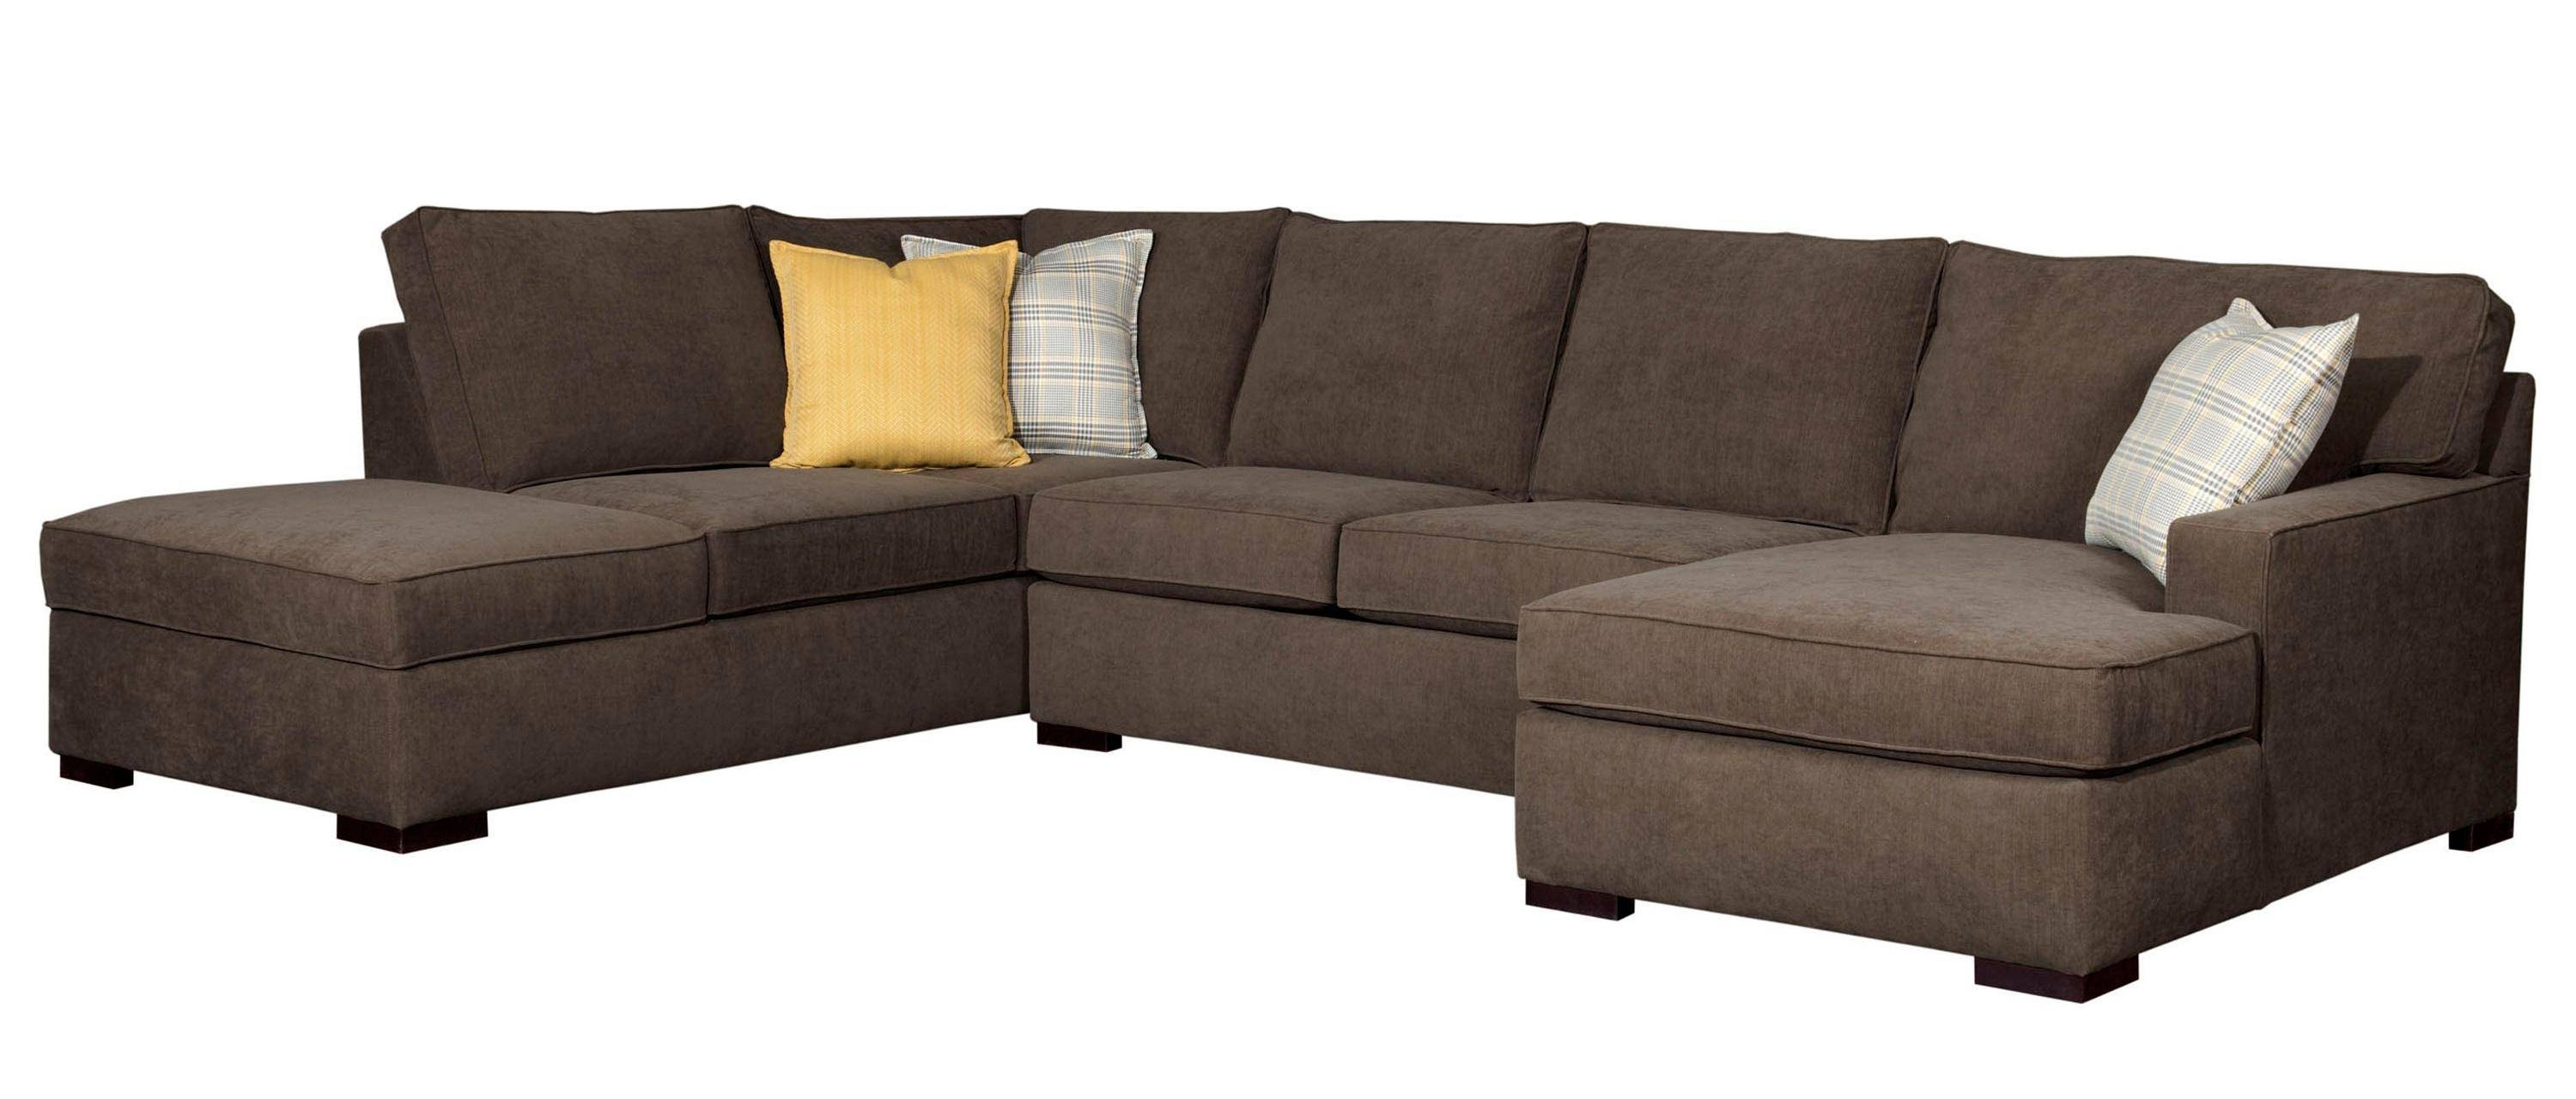 Broyhill Furniture Raphael Contemporary Sectional Sofa With Raf inside Broyhill Sectional Sofas (Image 12 of 30)